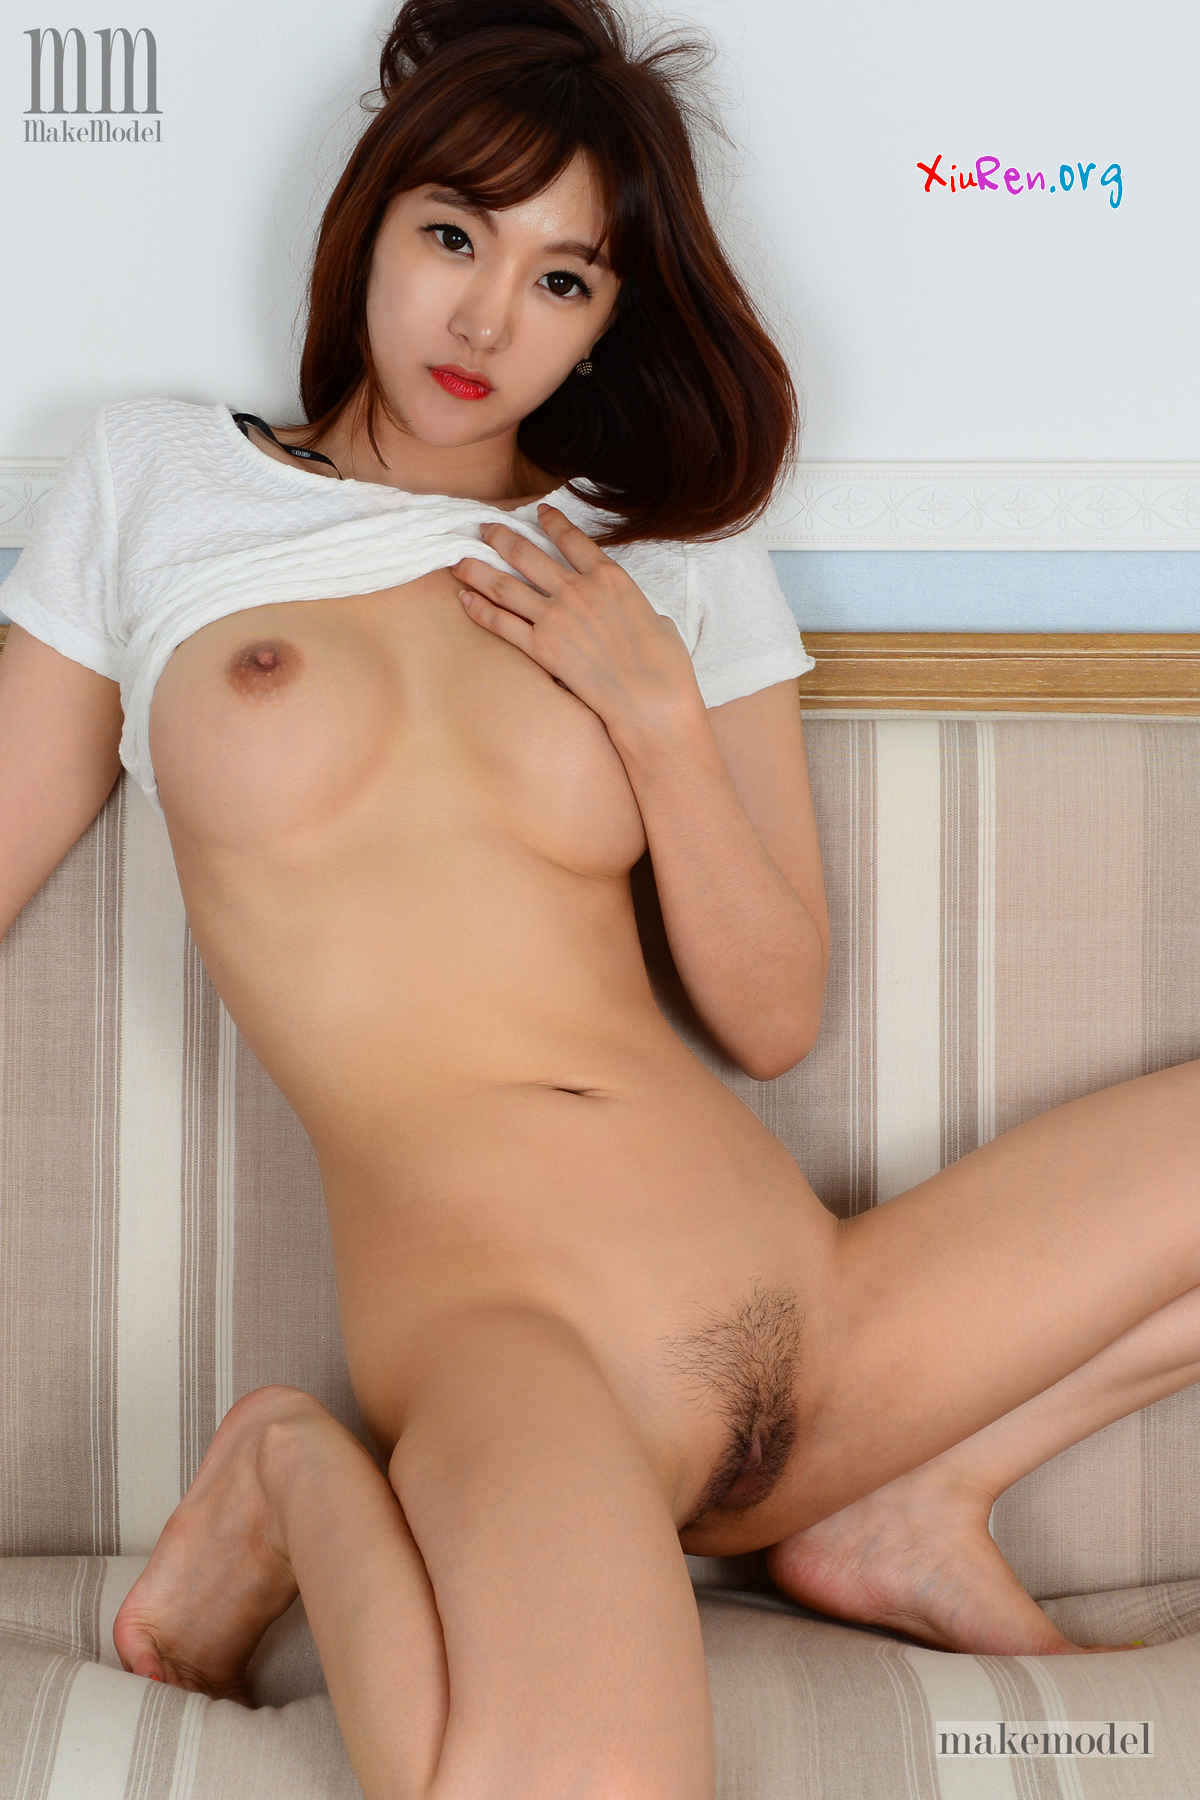 Idea naked sexy korean girl ouagalab